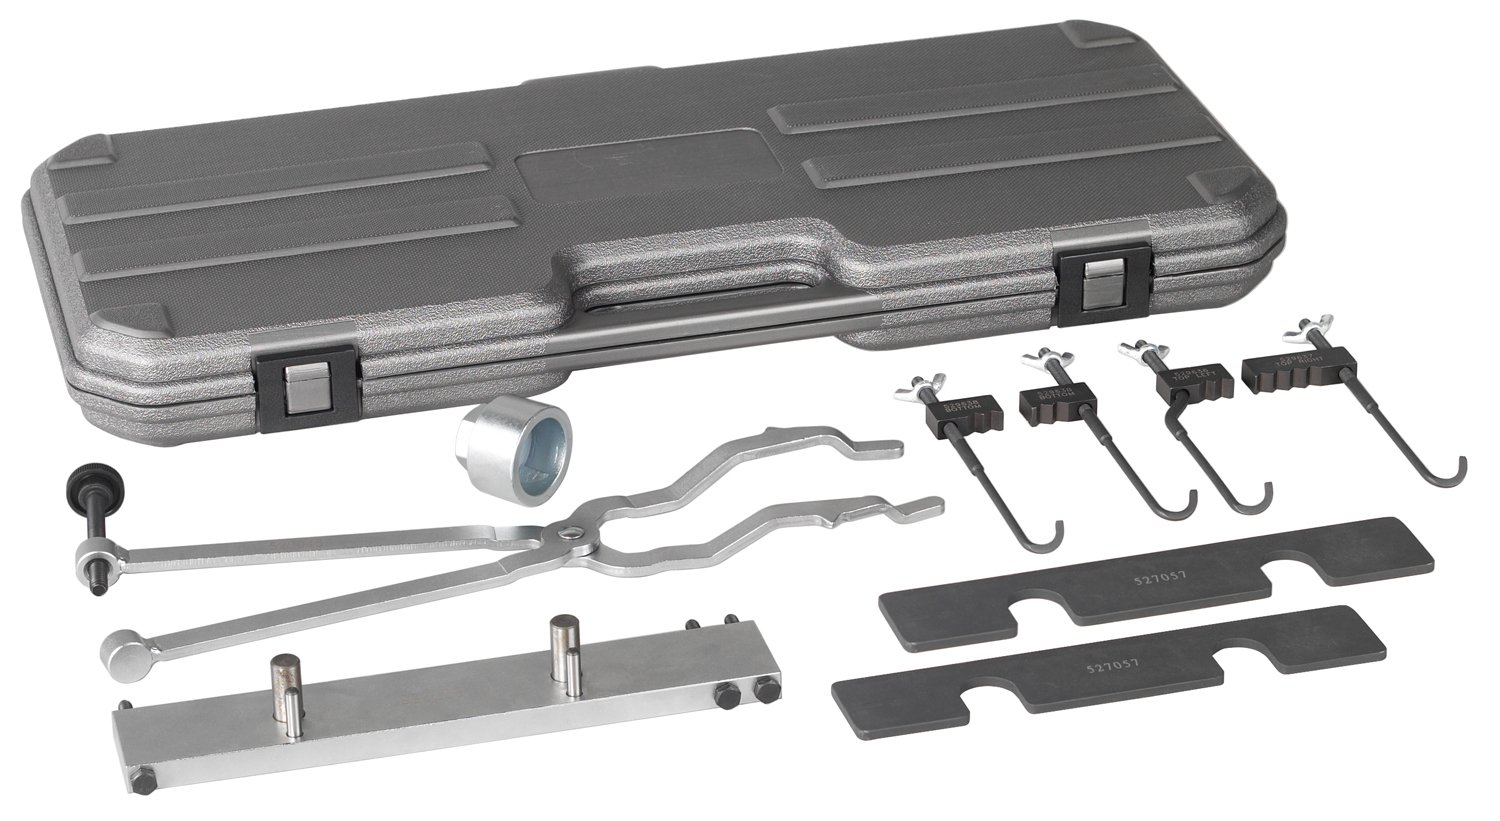 OTC (6686) Cam Tool Set - GM NorthStar V8